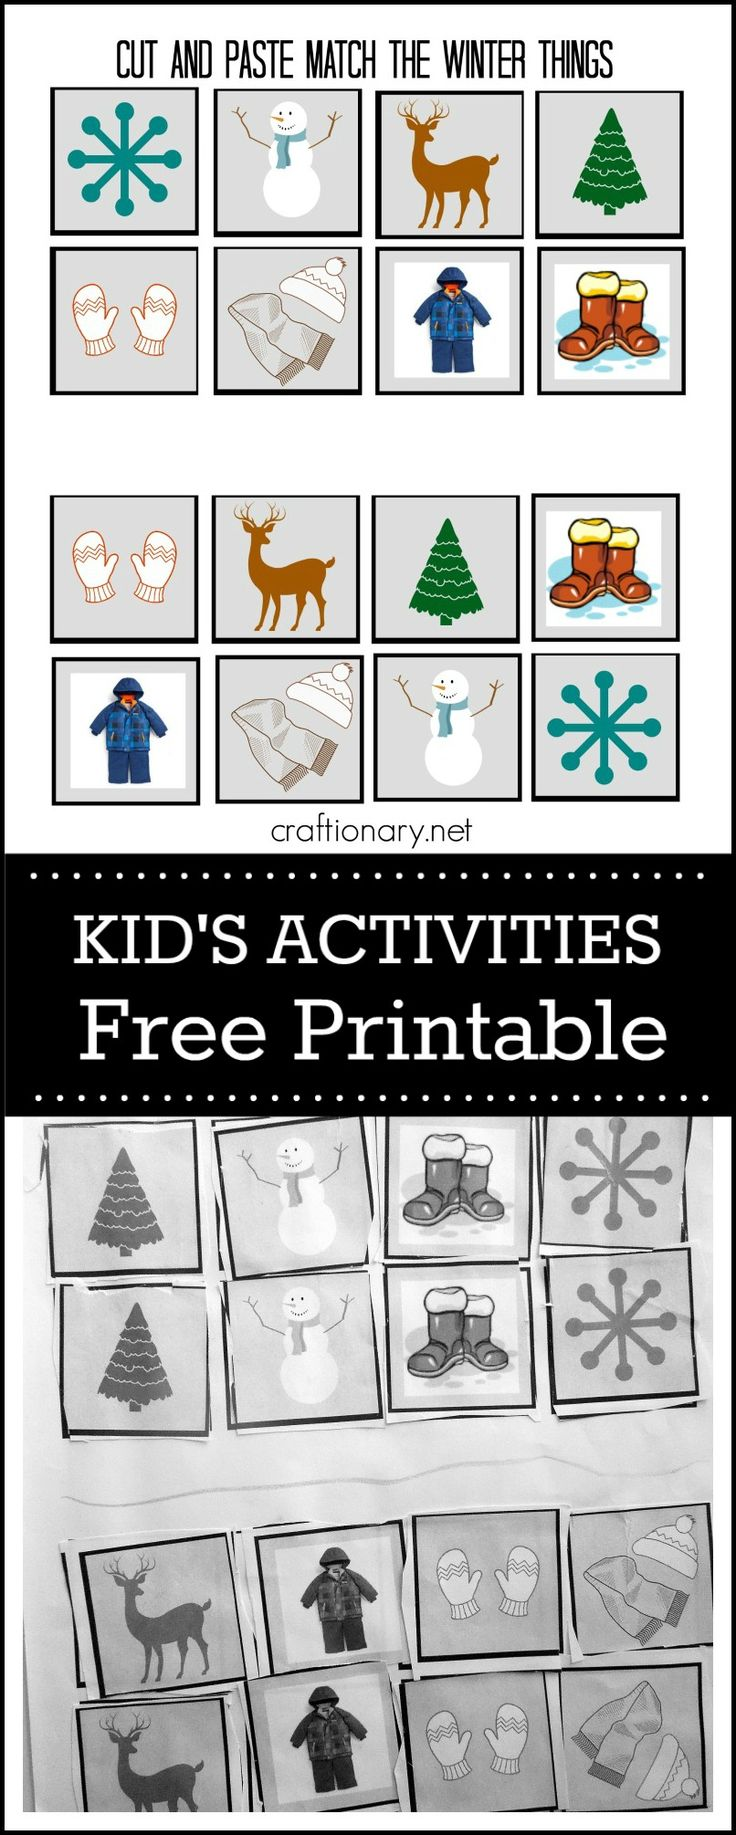 Common Winter elements FREE printable for kids ~ cut and paste activity at craftionary.net